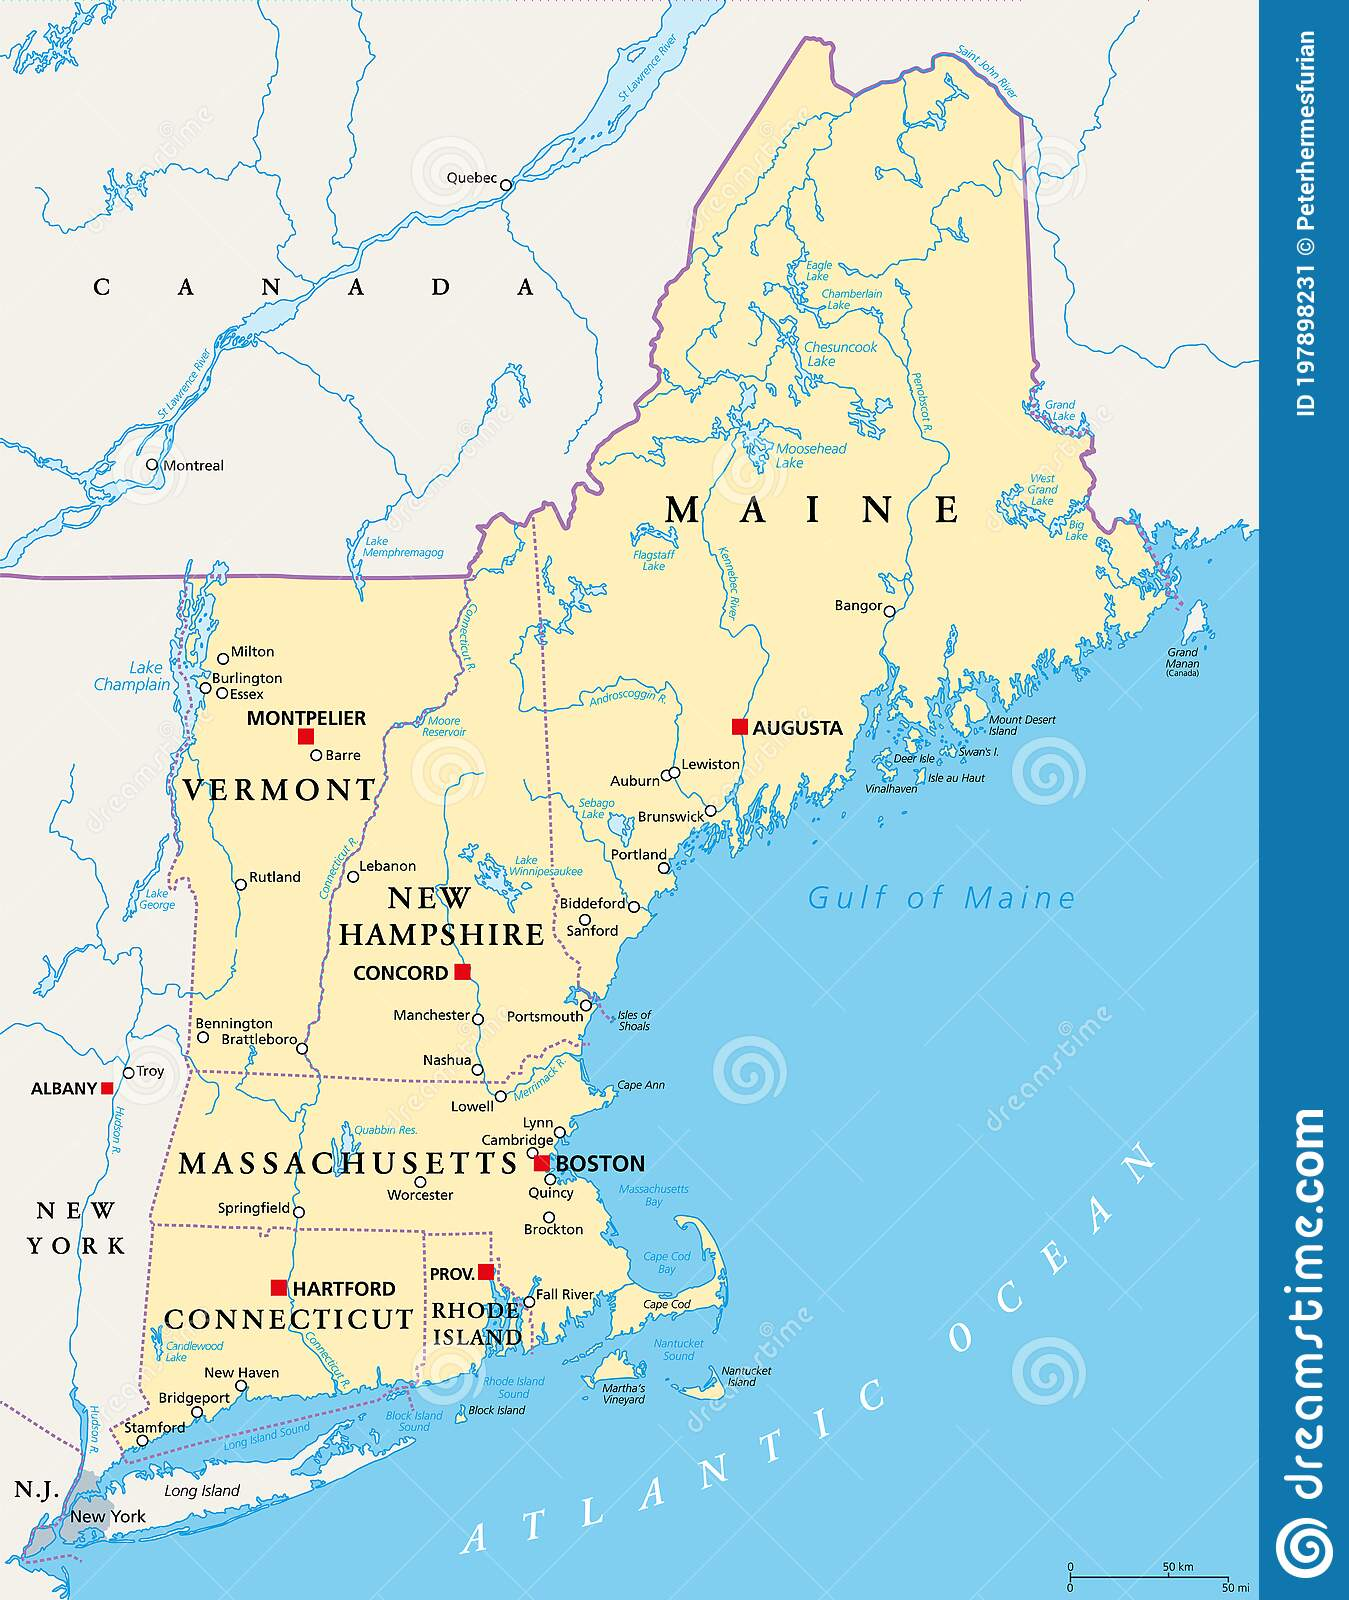 New England Map Stock Illustrations 728 New England Map Stock Illustrations Vectors Clipart Dreamstime